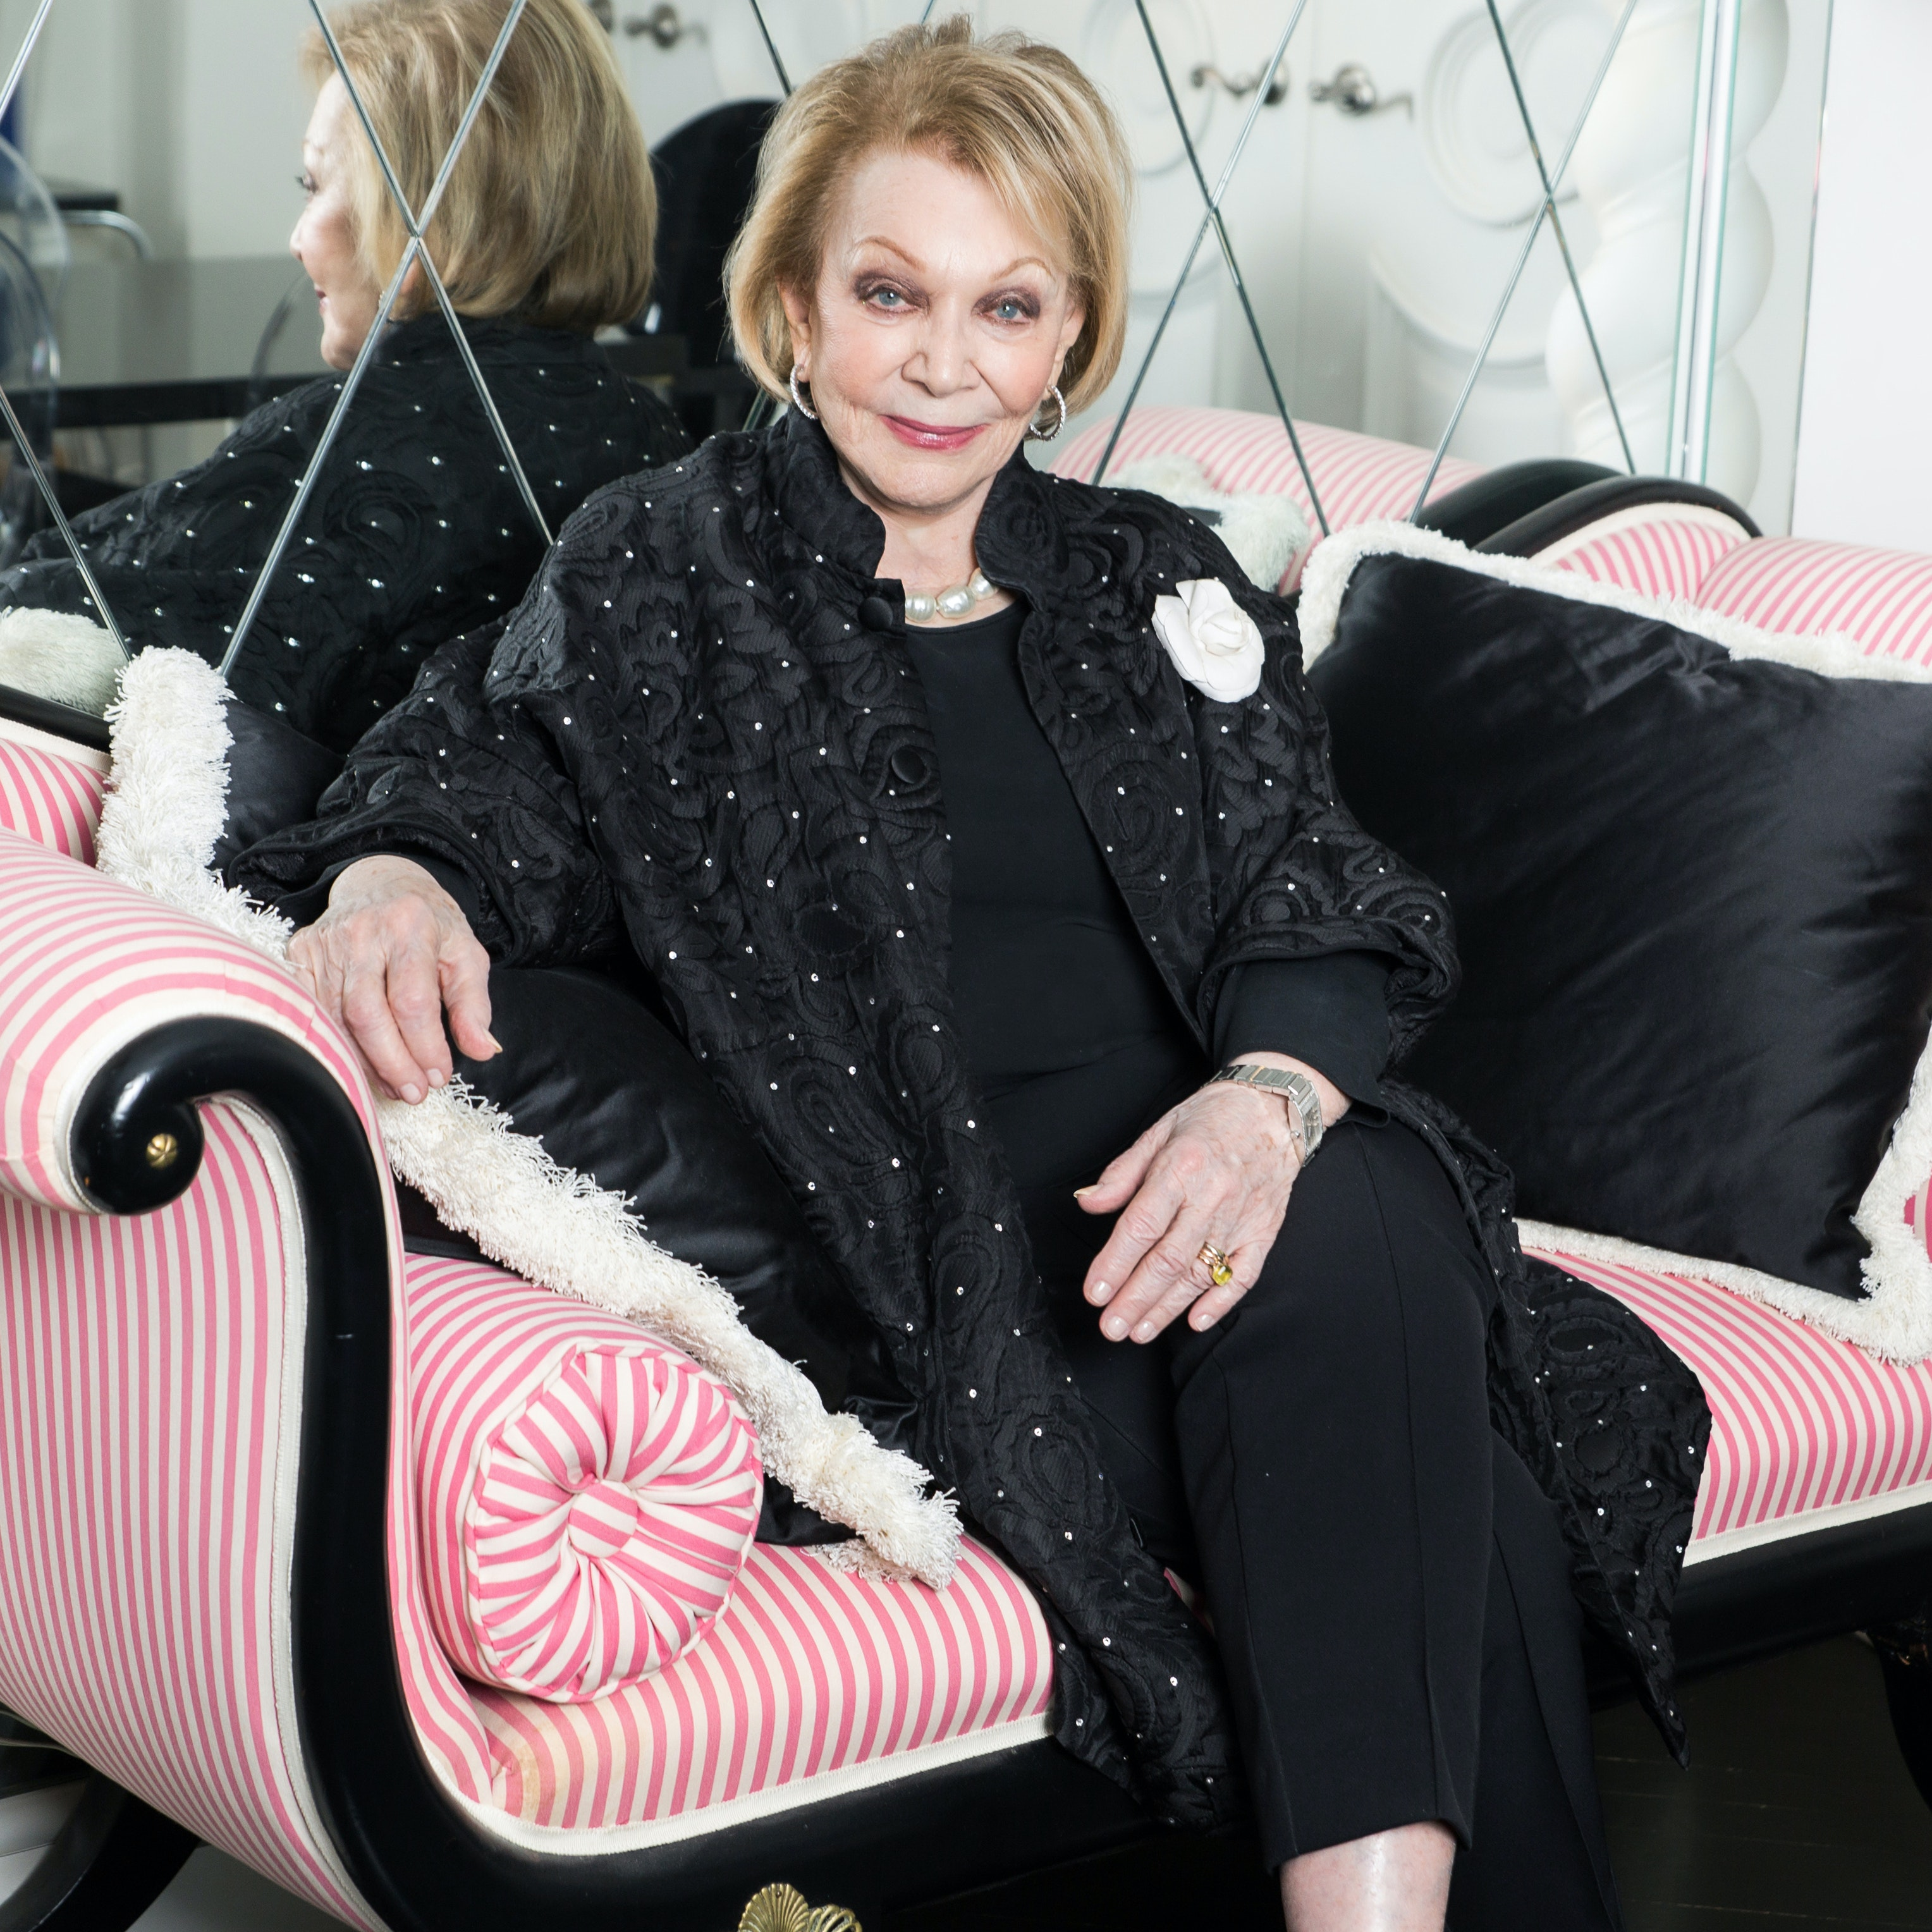 Legendary Journalist Joan Kron Discusses Plastic Surgery, Injectables, and the Perfume Taxi Drivers Love